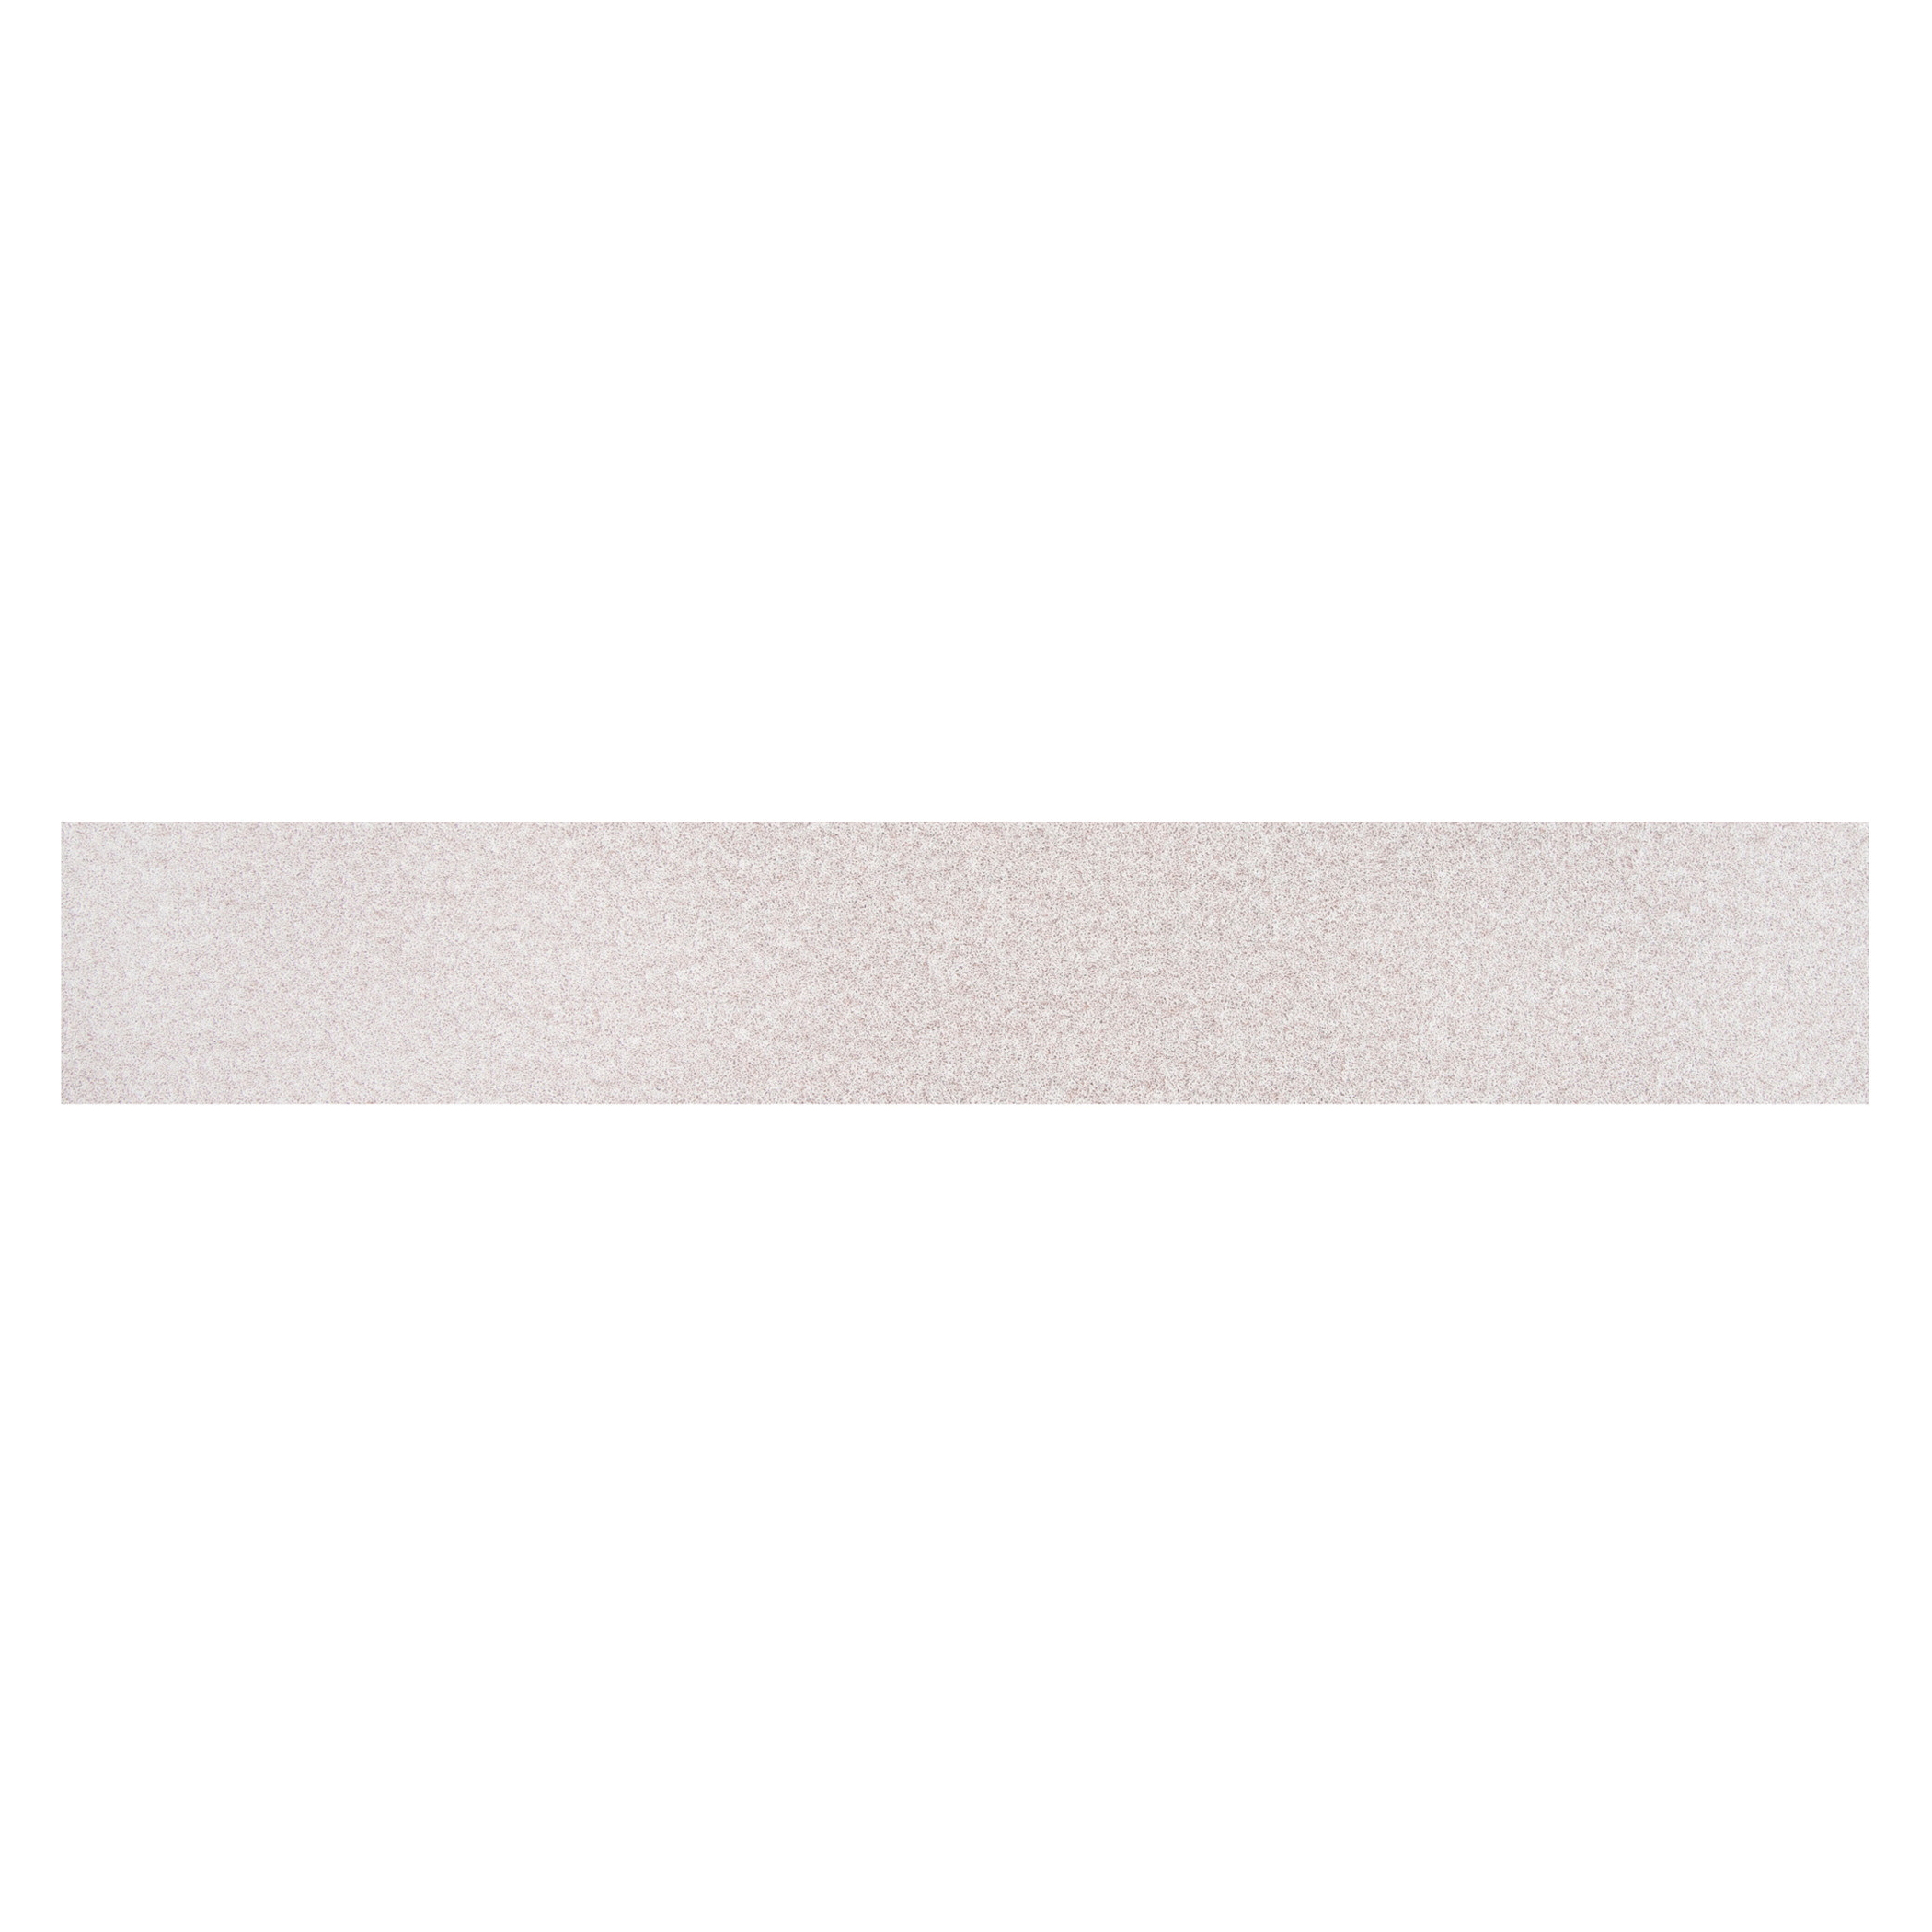 Norton® 66261131643 A275OP Hook and Loop Coated File Strip, 16-1/2 in L x 2-3/4 in W, P150 Grit, Fine Grade, Aluminum Oxide Abrasive, Anti-Loading Paper Backing